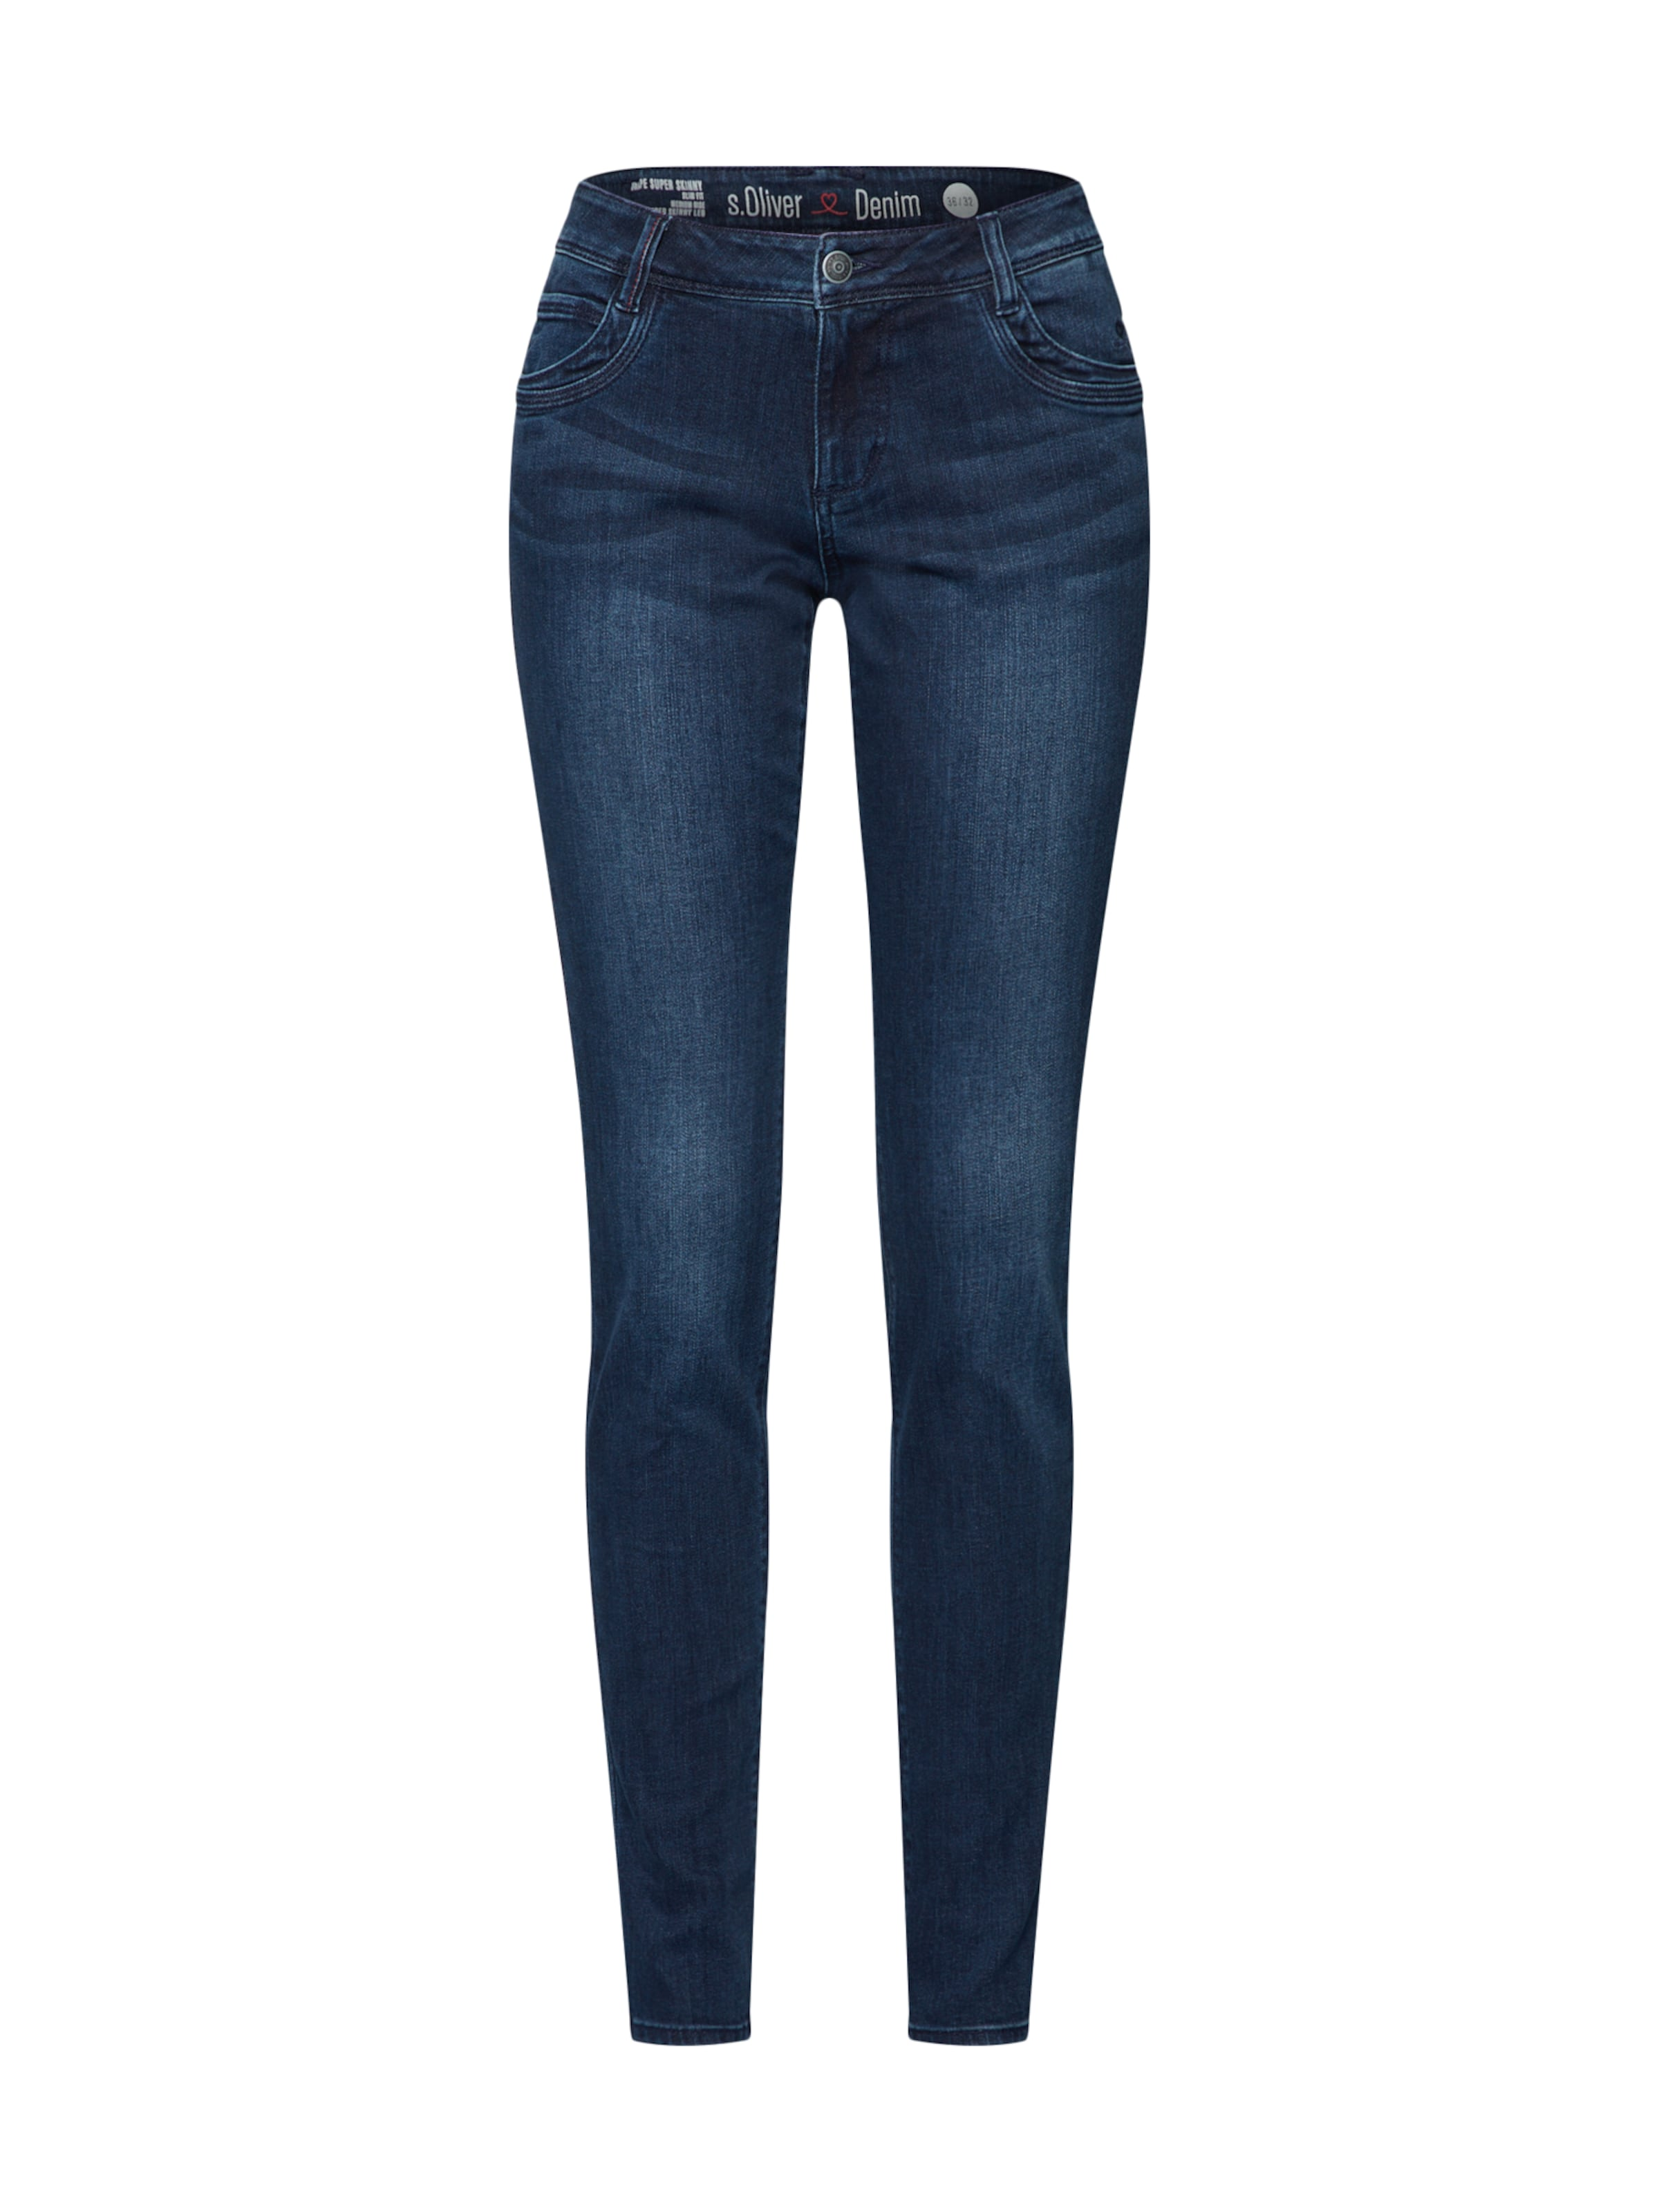 LabelJean Denim oliver In S Red Bleu rdCQsht